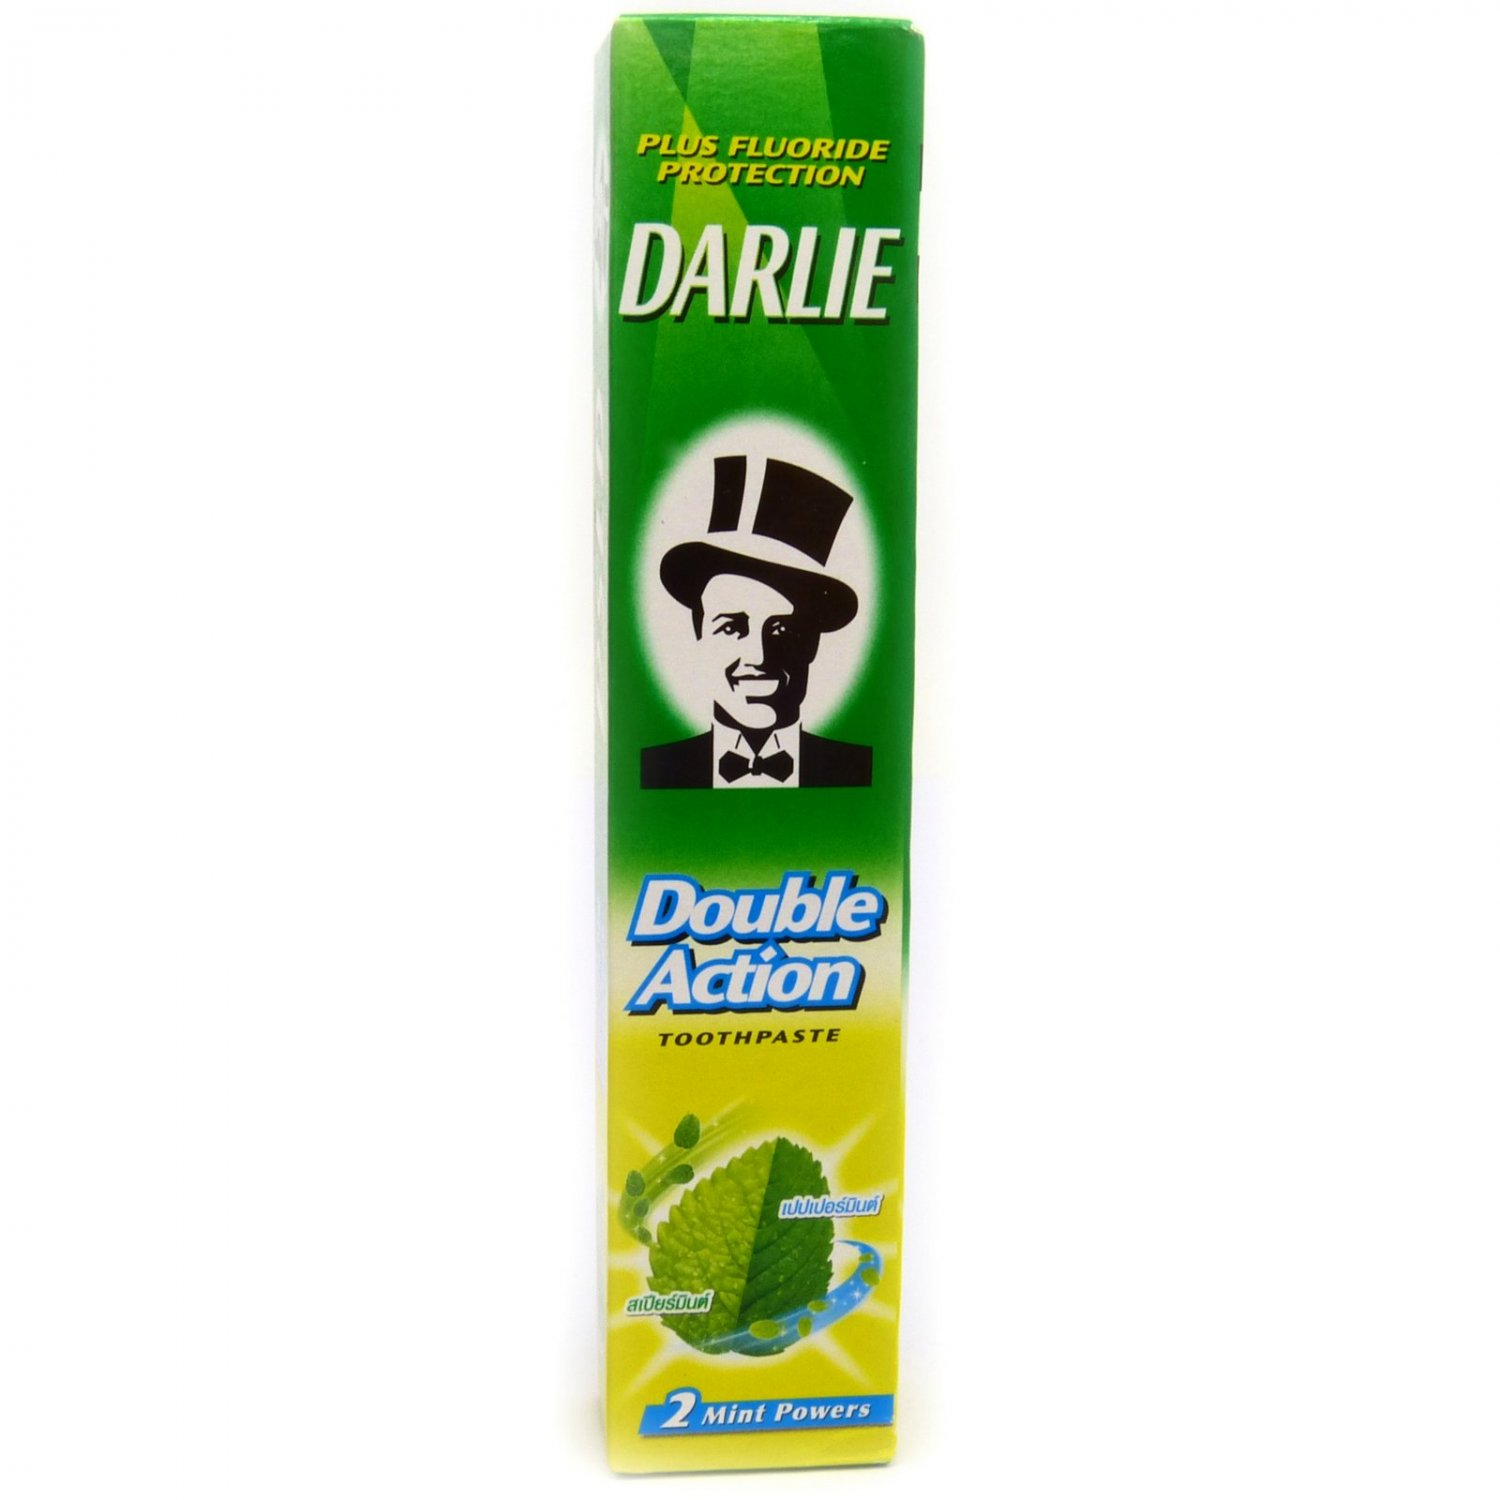 Darlie Double Action Fluoride Toothpaste 2 Mint Powers 40g (travel size)